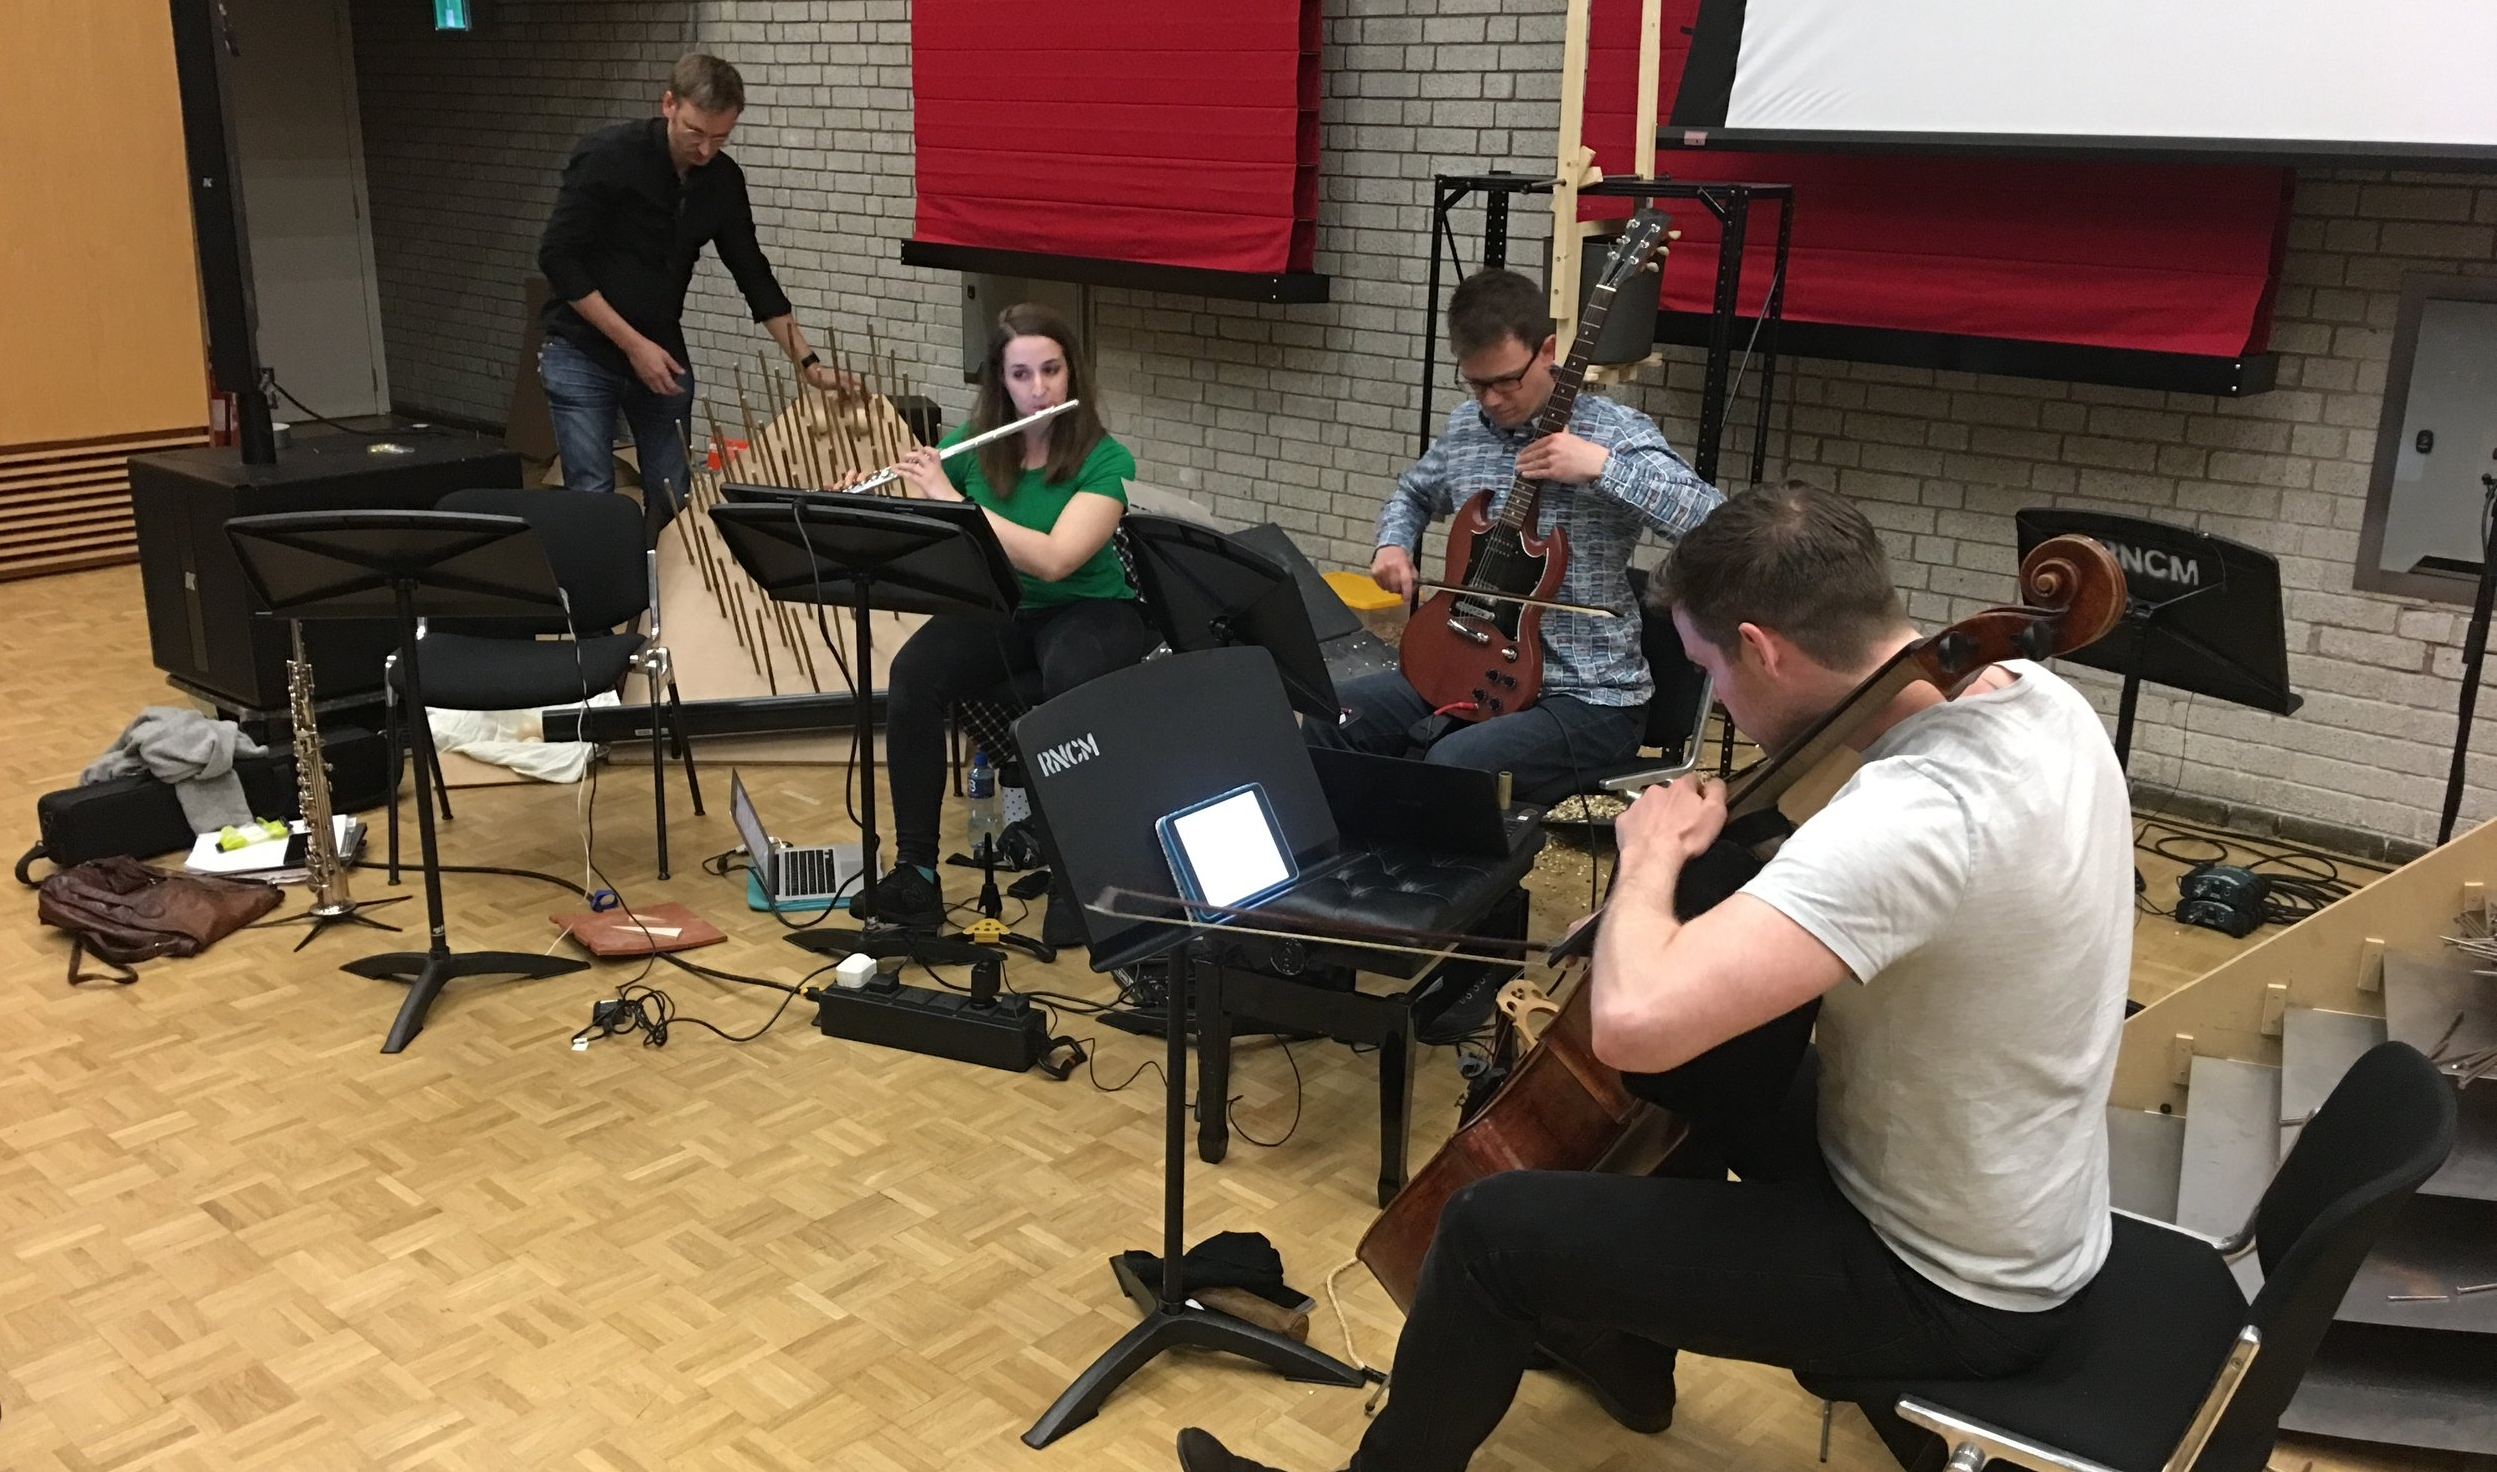 Meeting the Universe Halfway  in performance at the Royal Northern College of Music, Manchester, in May 2018.